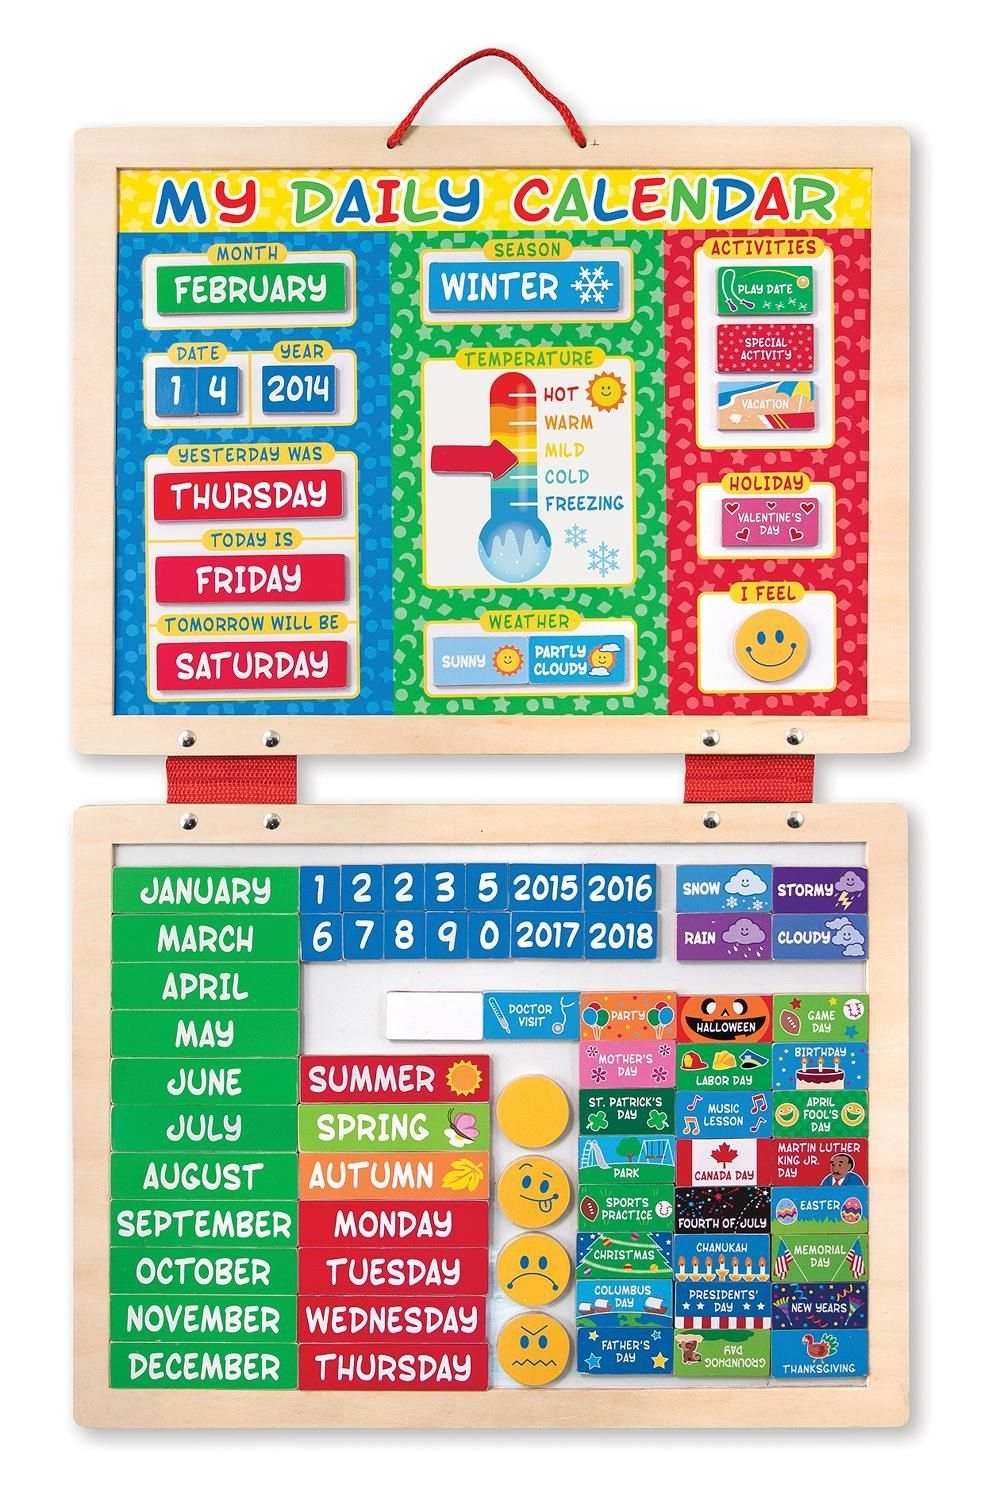 Seasons, Temperature, Schedule, Kids, Responsibility, Chart